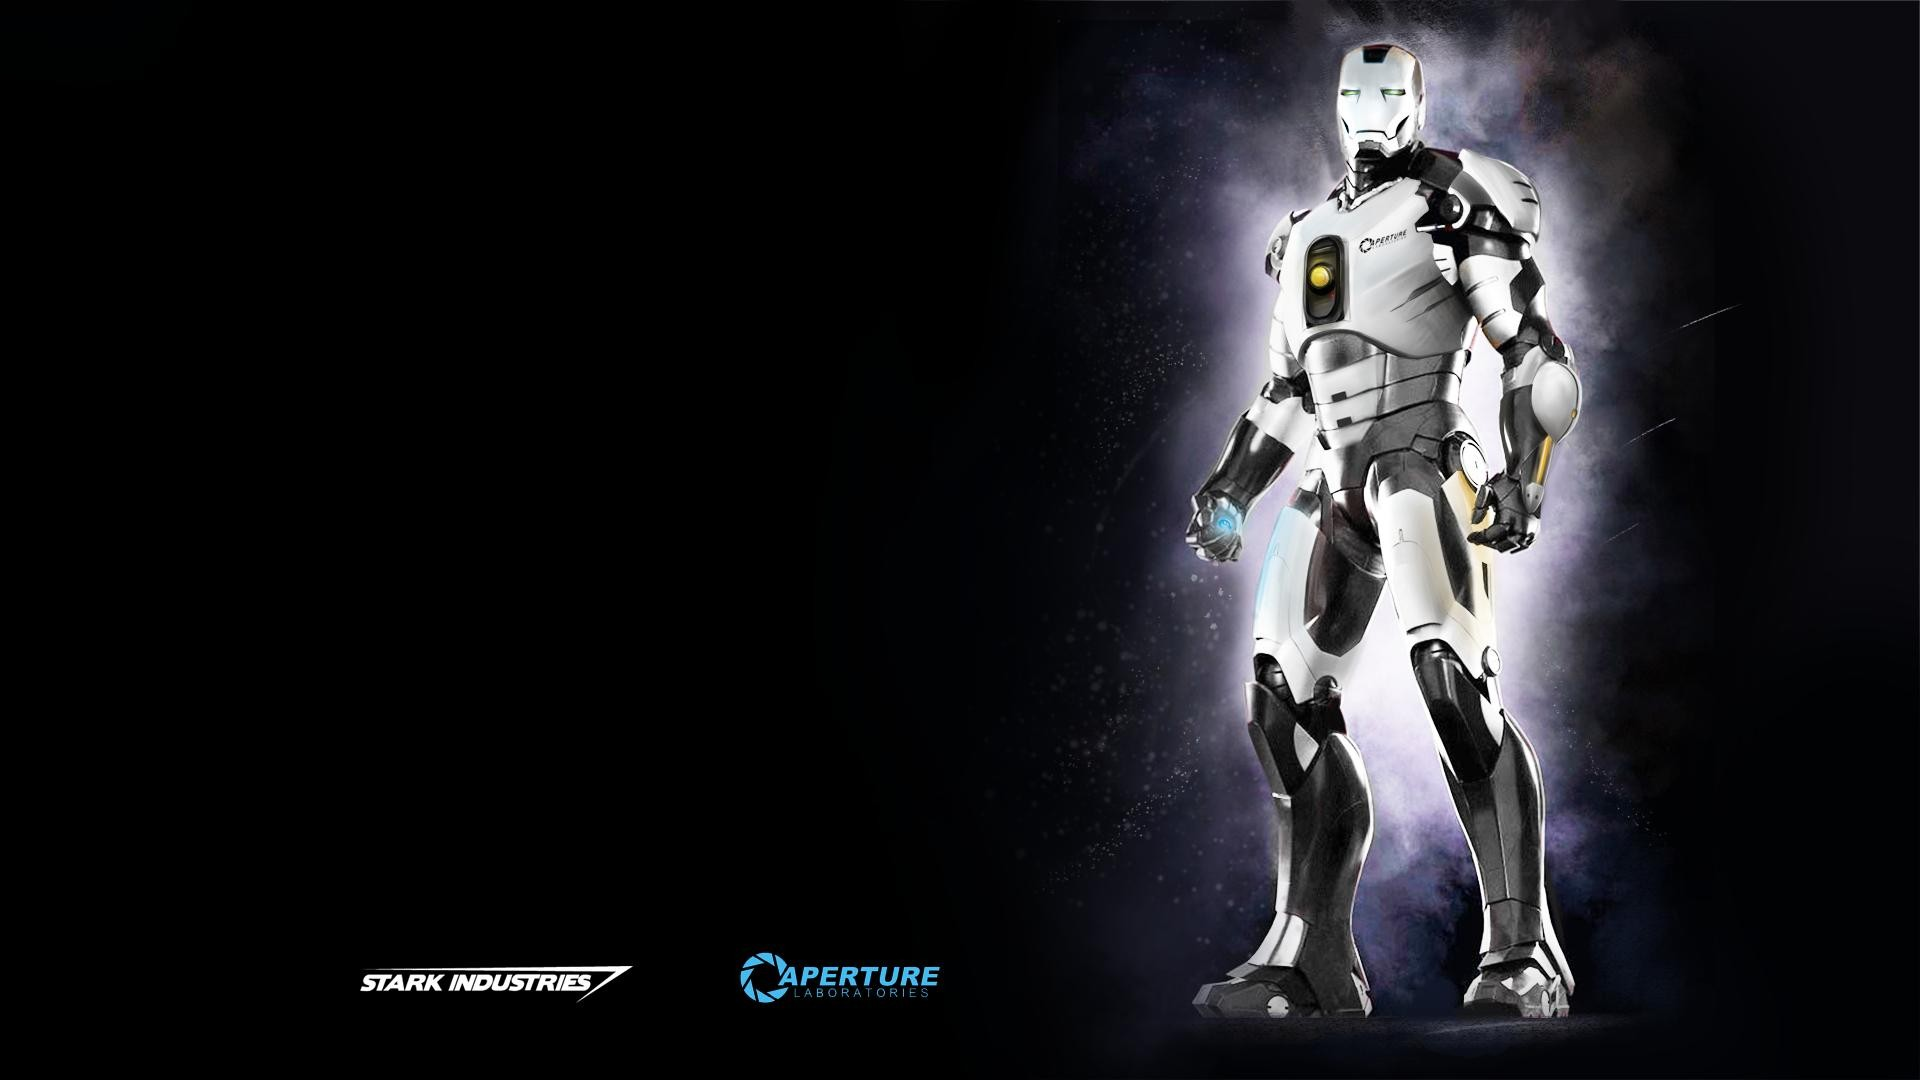 35 Iron Man HD Wallpapers for Desktop   Page 3 of 3   Cartoon District 1920x1080